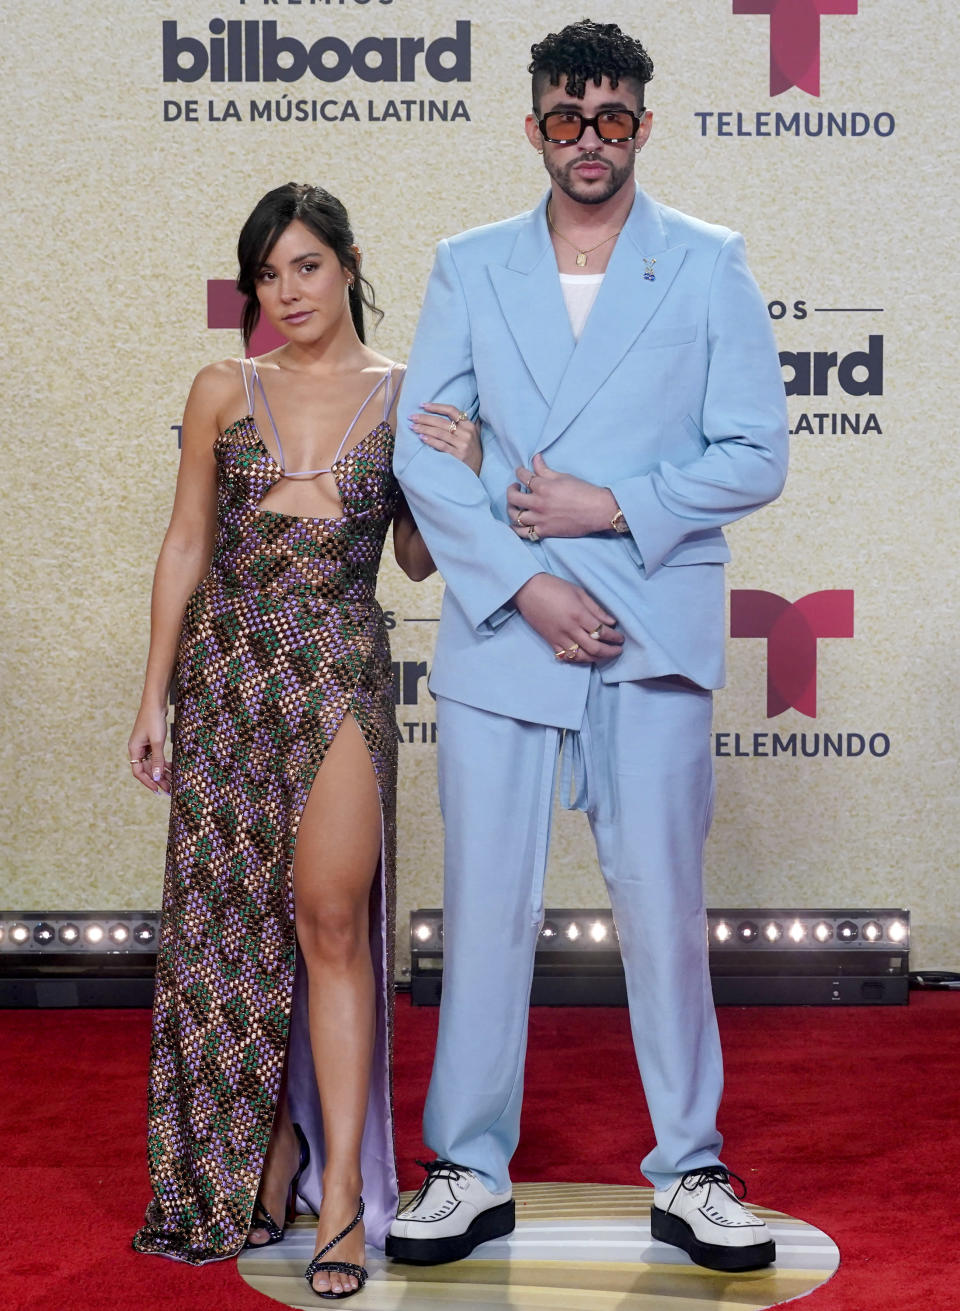 Bad Bunny, right, and Gabriela Berlingeri arrive at the Billboard Latin Music Awards on Thursday, Sept. 23, 2021, at the Watsco Center in Coral Gables, Fla. (AP Photo/Marta Lavandier)